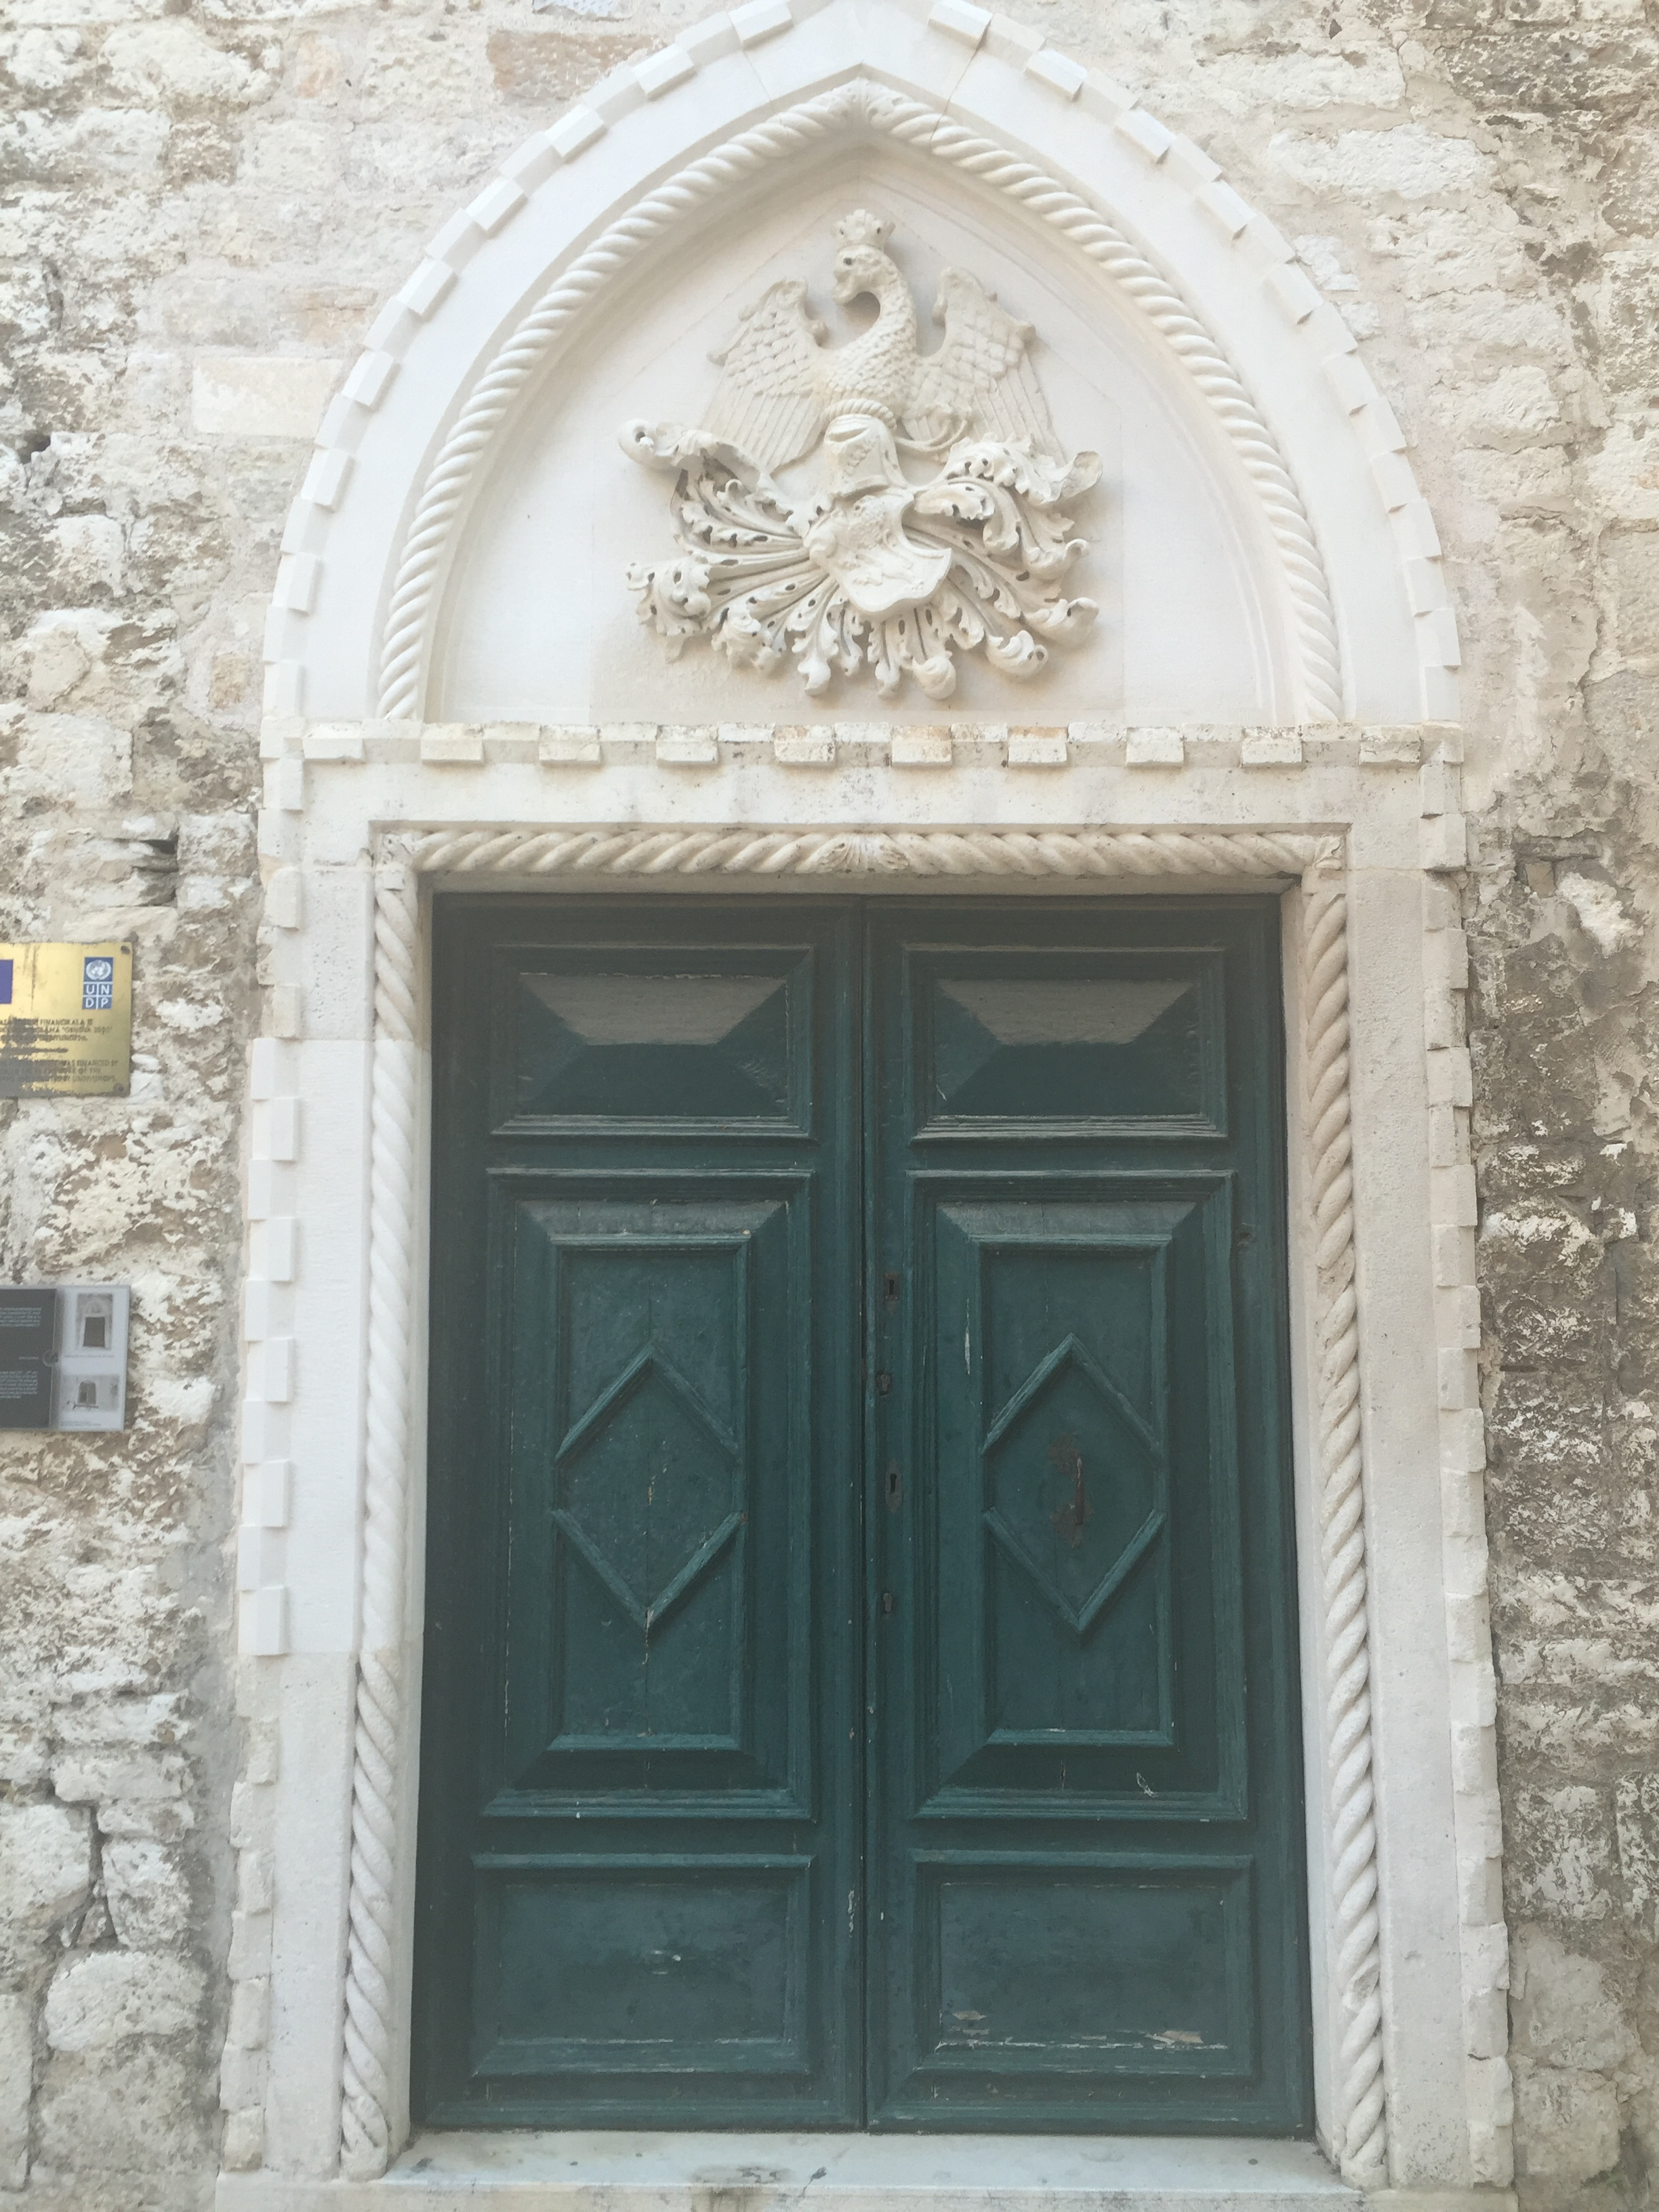 The door of the Palazzo Rossini. Simply stunning and ornate. The coat of arms shows a dragon with a crown on it's head (not an eagle as was customary at the time).